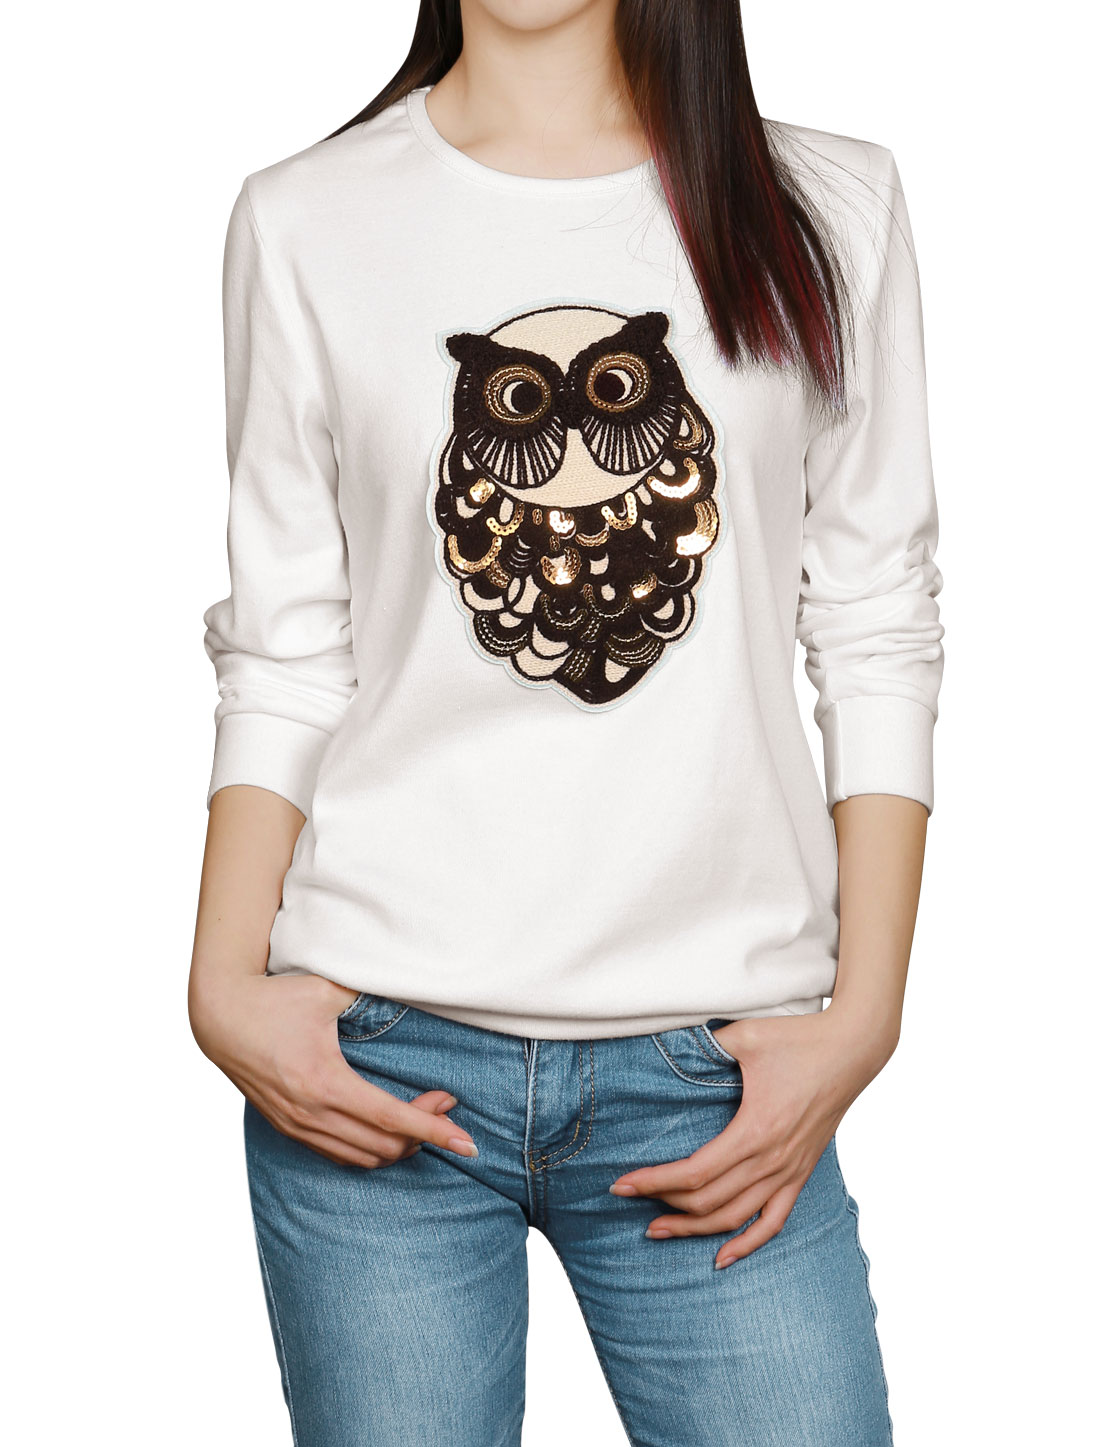 Ladies Sequin Decor Owl Applique Long Sleeves Casual Sweatshirt White L